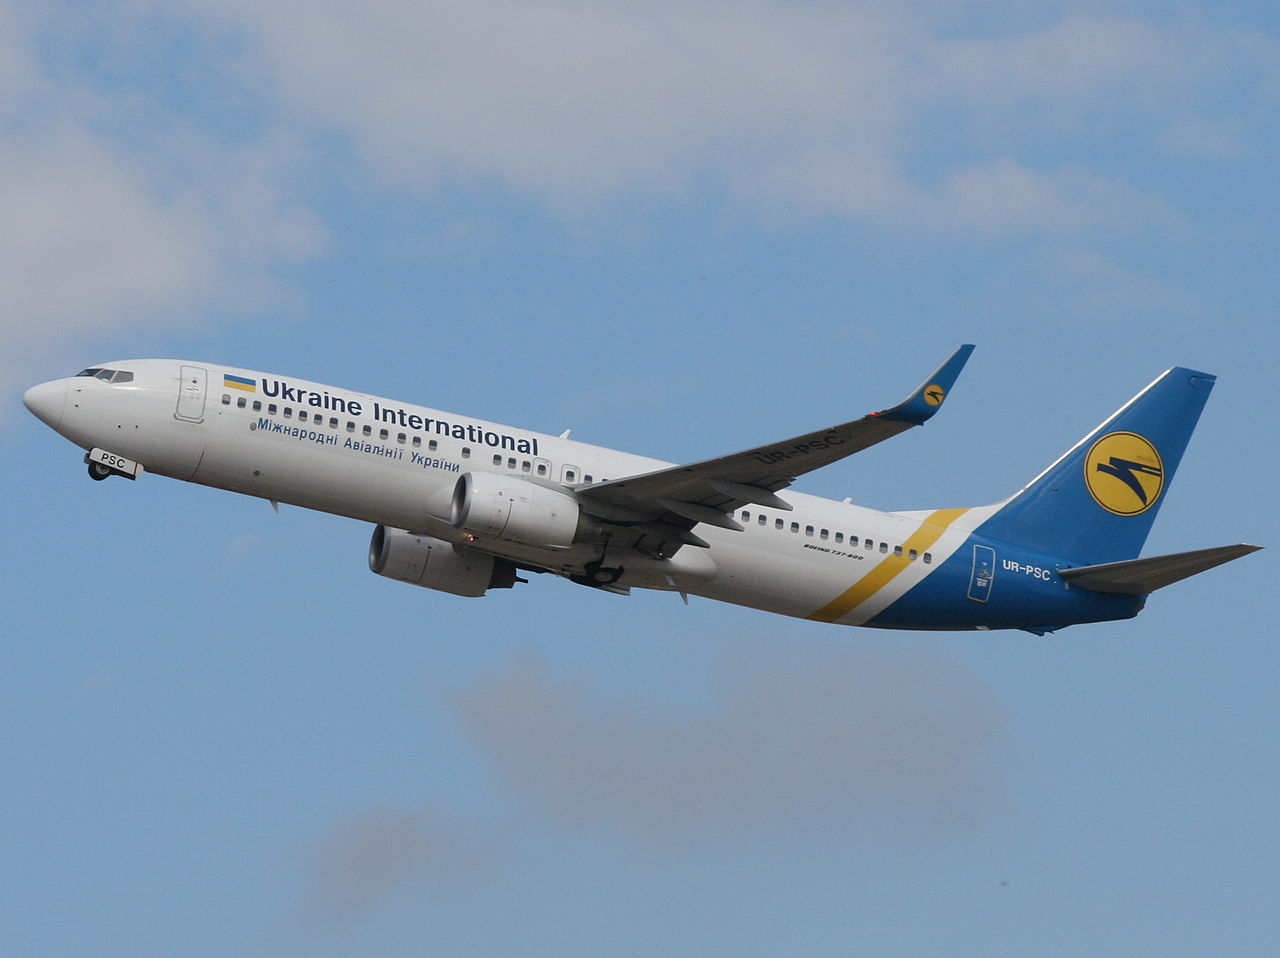 Ukrainian International Airlines Boeing 737-800 crashed after being hit by Iranian Tor-M1 Missile